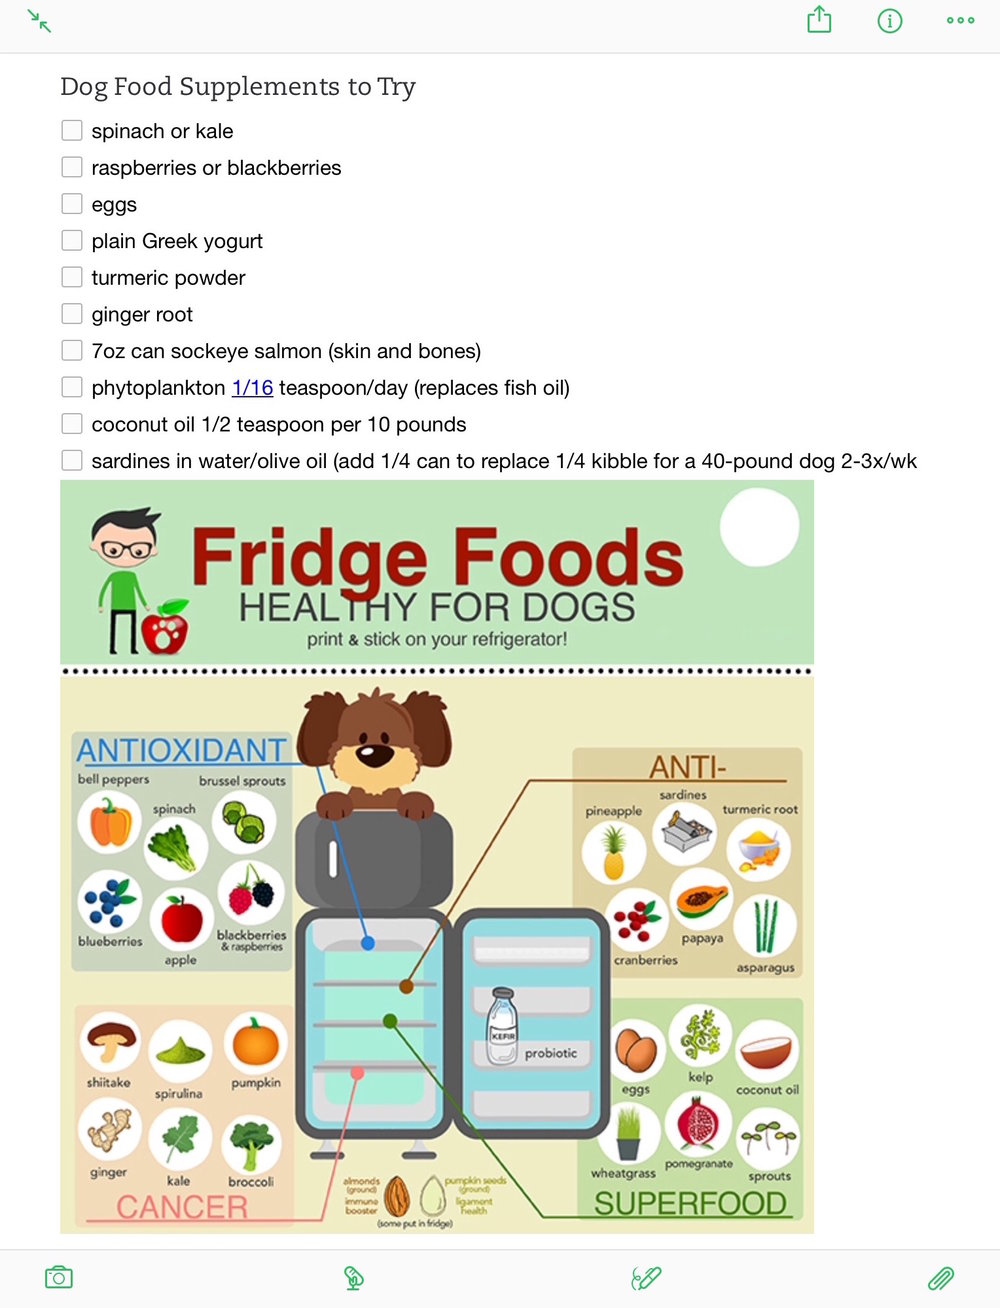 Love how easily the Fridge Foods infographic from Planet Paws clipped into Evernote. Now, when I'm grocery shopping, I can easily add variety to what I'm buying to supplement our pups' kibble. We also supplement kibble with Humarian's Probonix for Dogs, a liver flavored probiotic that's maintaining a healthy gut for both pups.